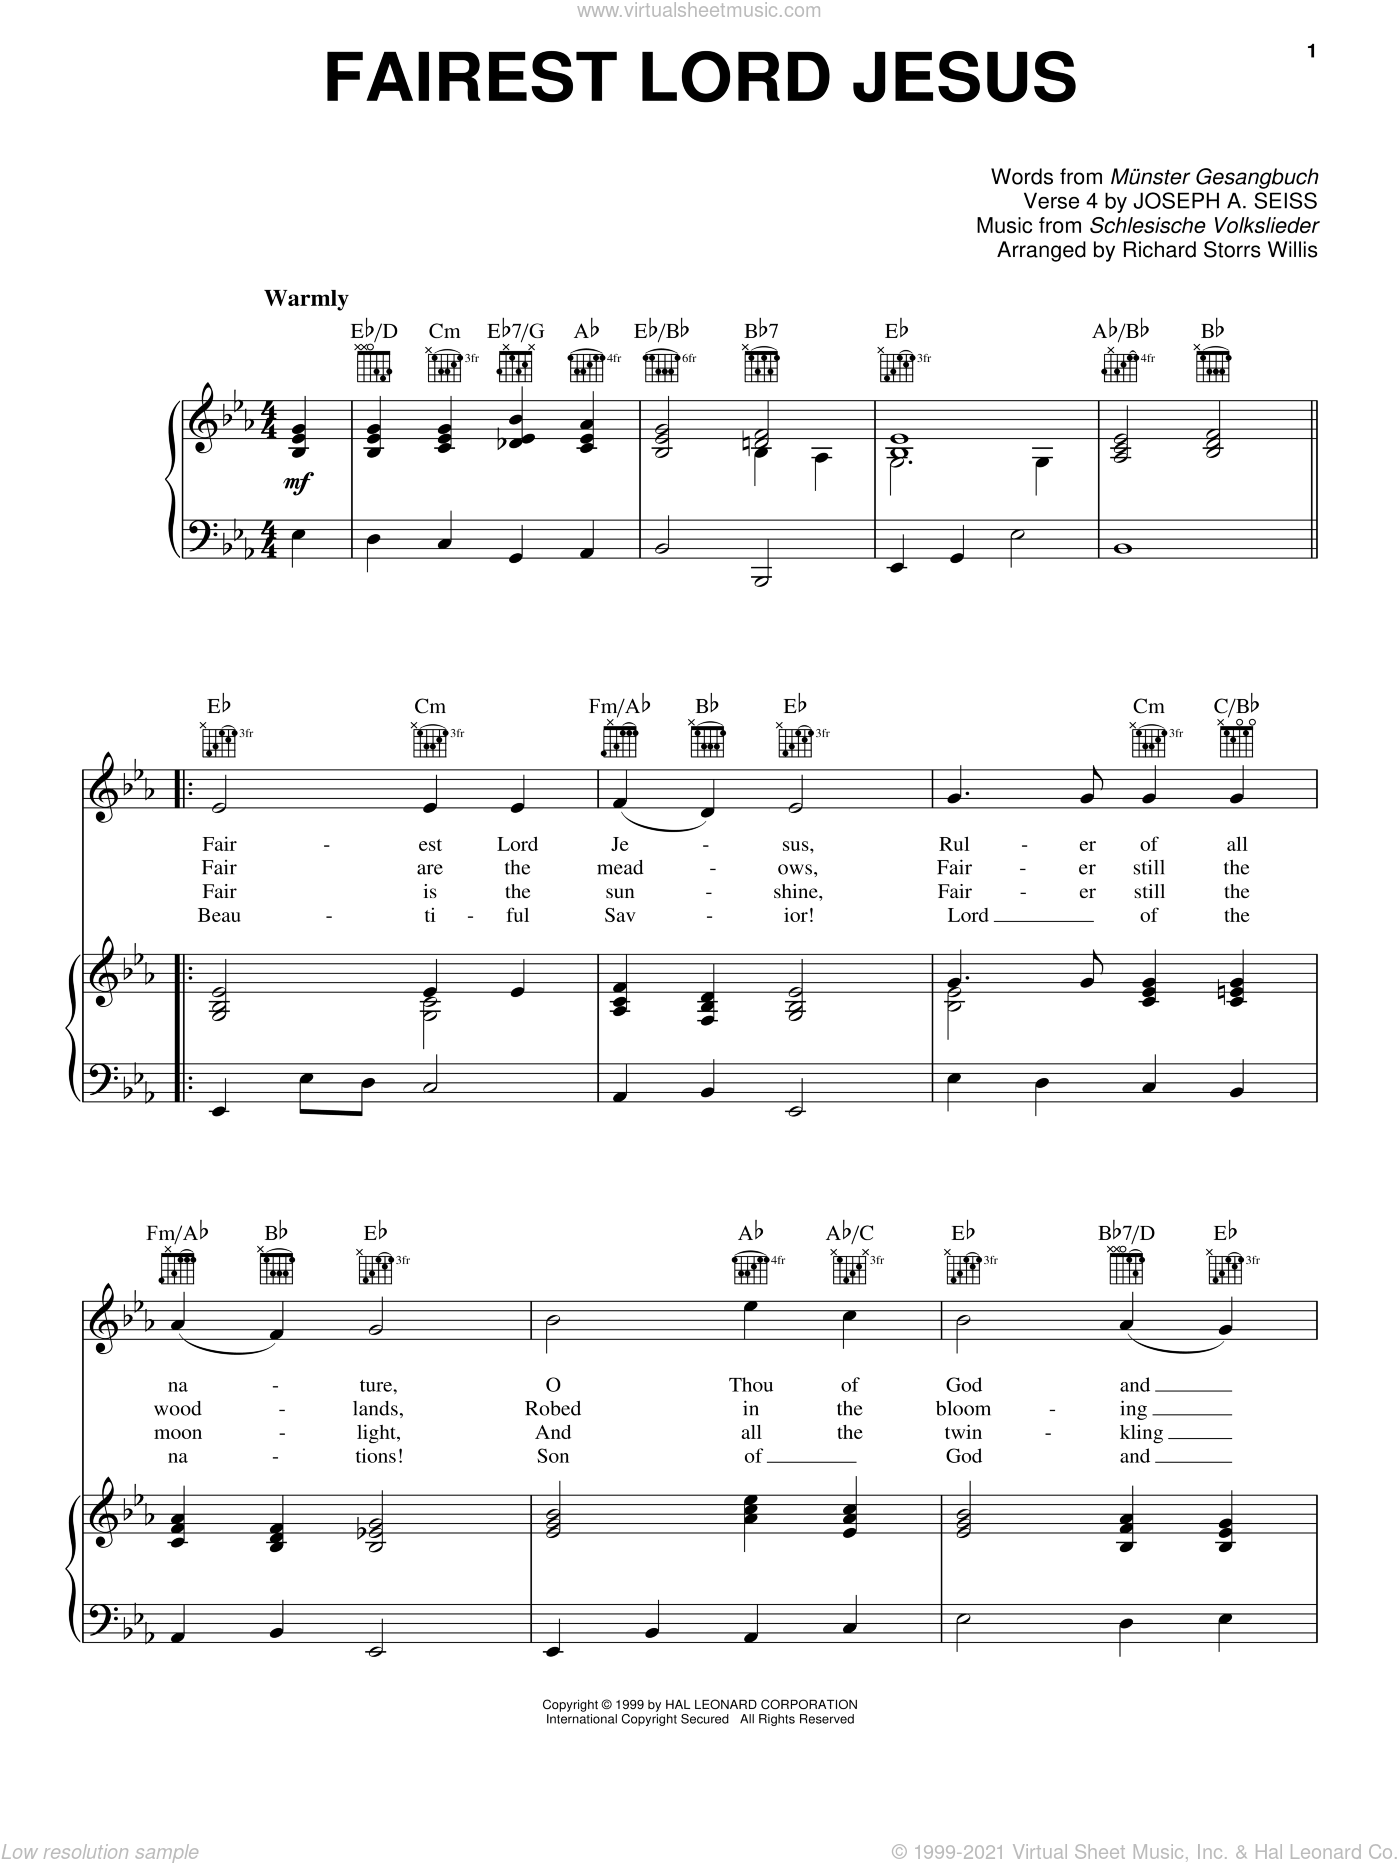 Fairest Lord Jesus sheet music for voice, piano or guitar by Munster Gesangbuch, Joseph August Seiss, Richard Storrs Willis and Schlesische Volkslieder, intermediate skill level